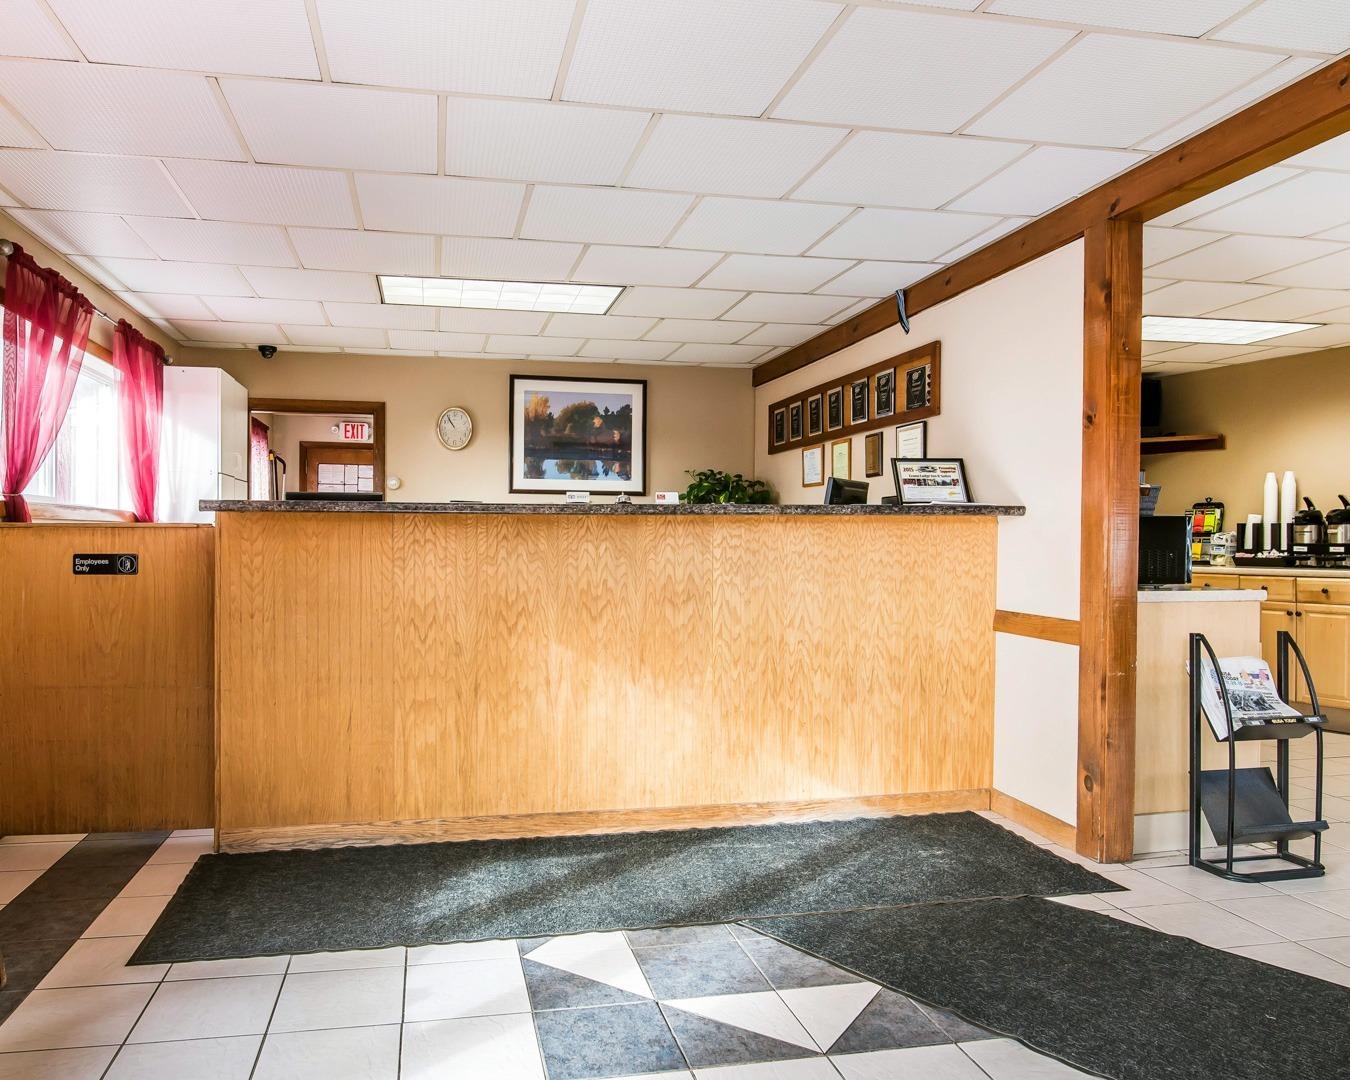 Econo Lodge Inn Amp Suites In Lincoln Nh 03251